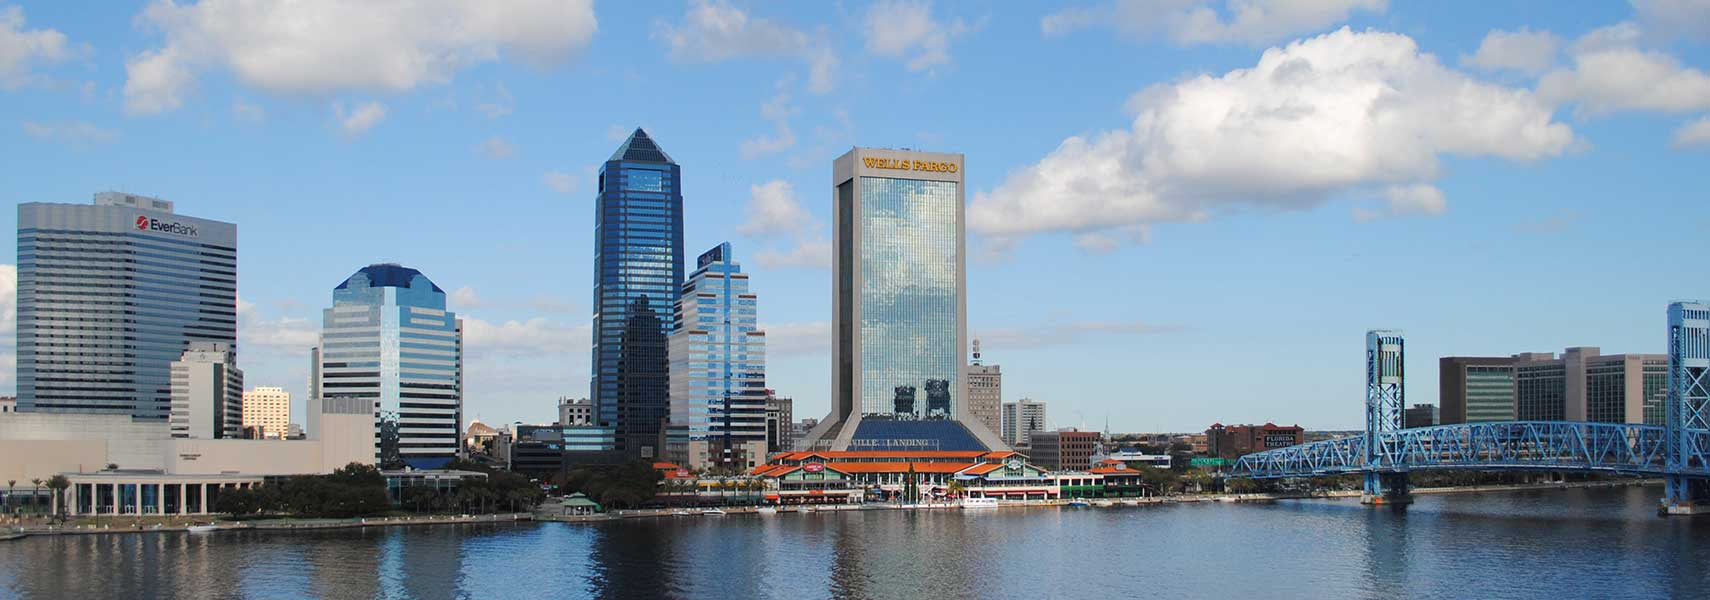 Google Map Of Jacksonville Florida USA Nations Online Project - Jacksonville map